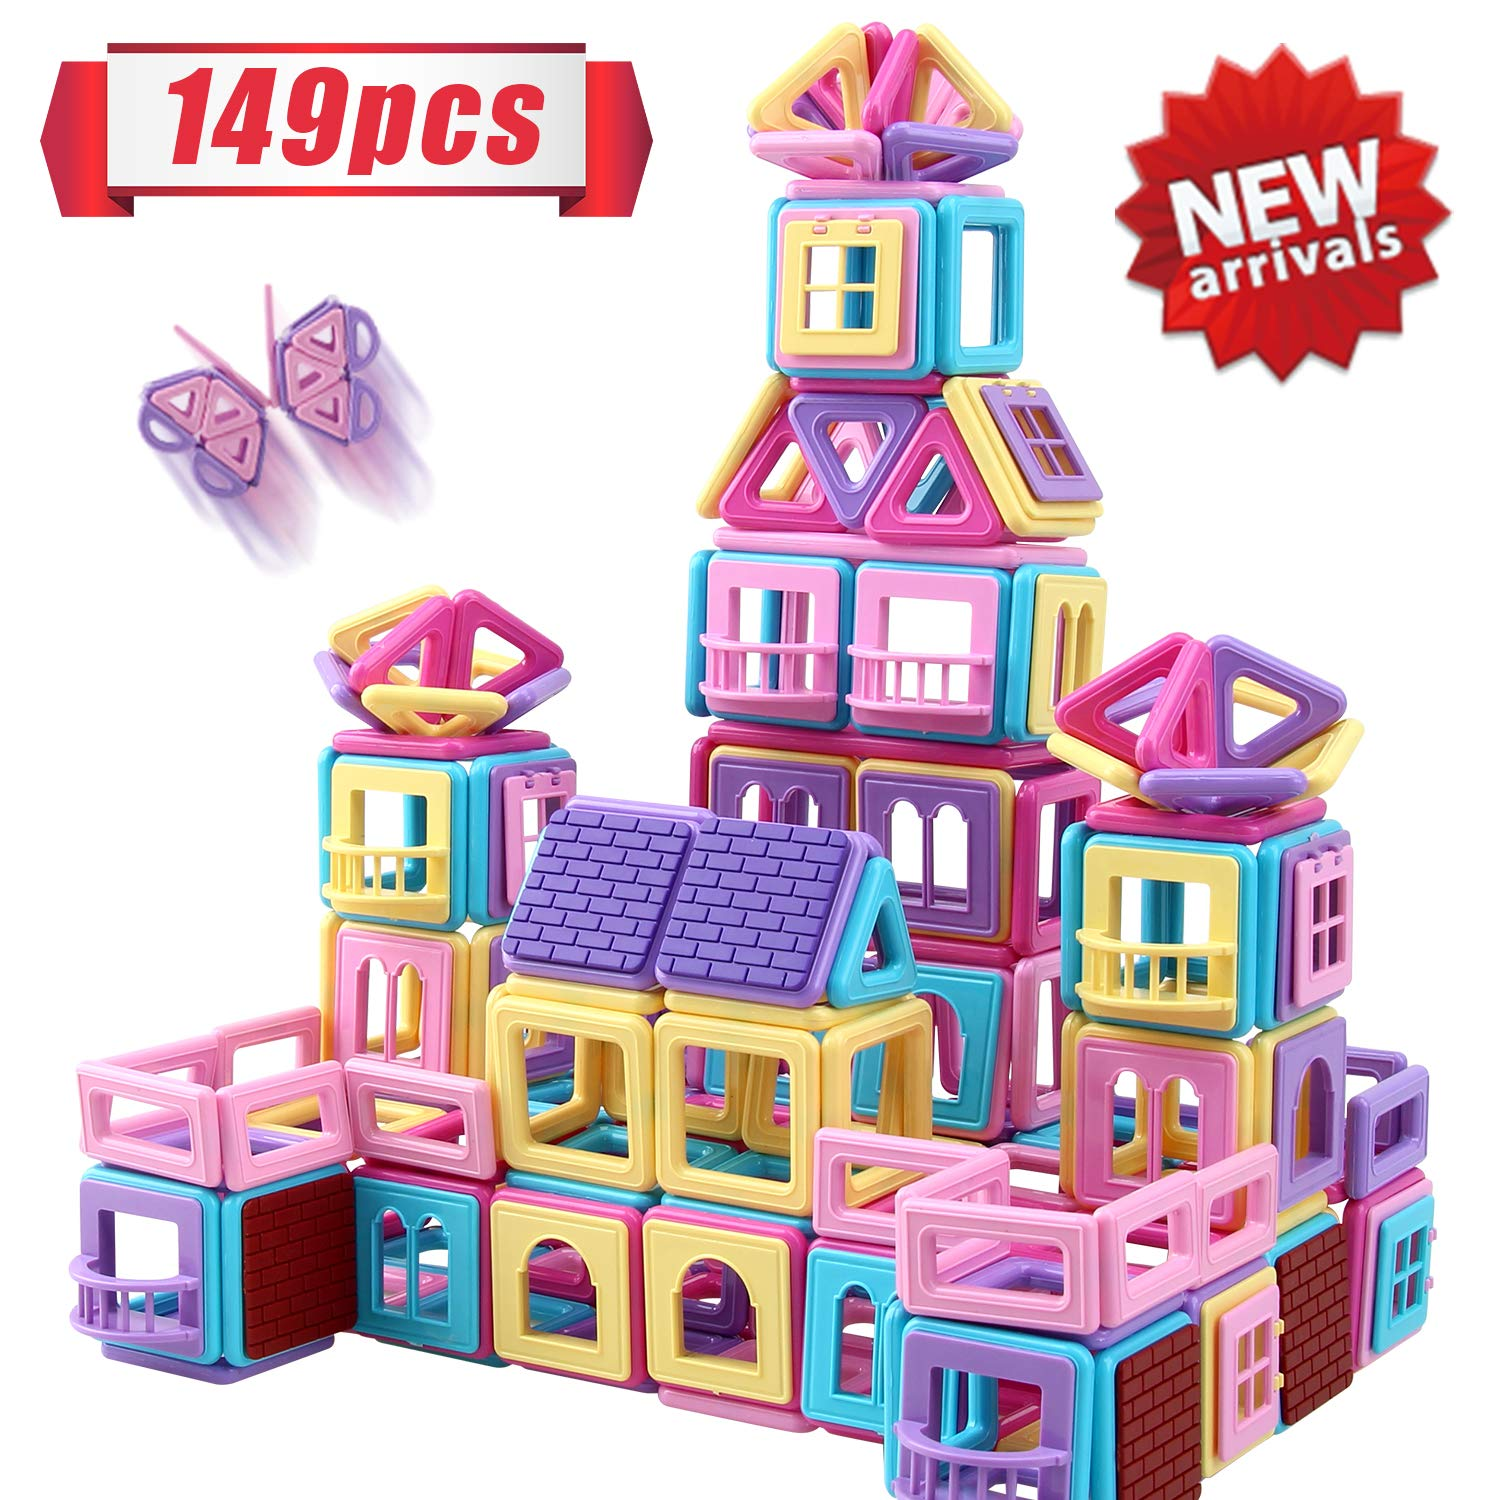 HOMOFY 149PCS Castle Magnetic Blocks for Boys Girls Kids -3D Macaron Colors Learning & Development Building Blocks Toys for 3 4 5 6 7 Year Old Boys Girls Gifts by HOMOFY